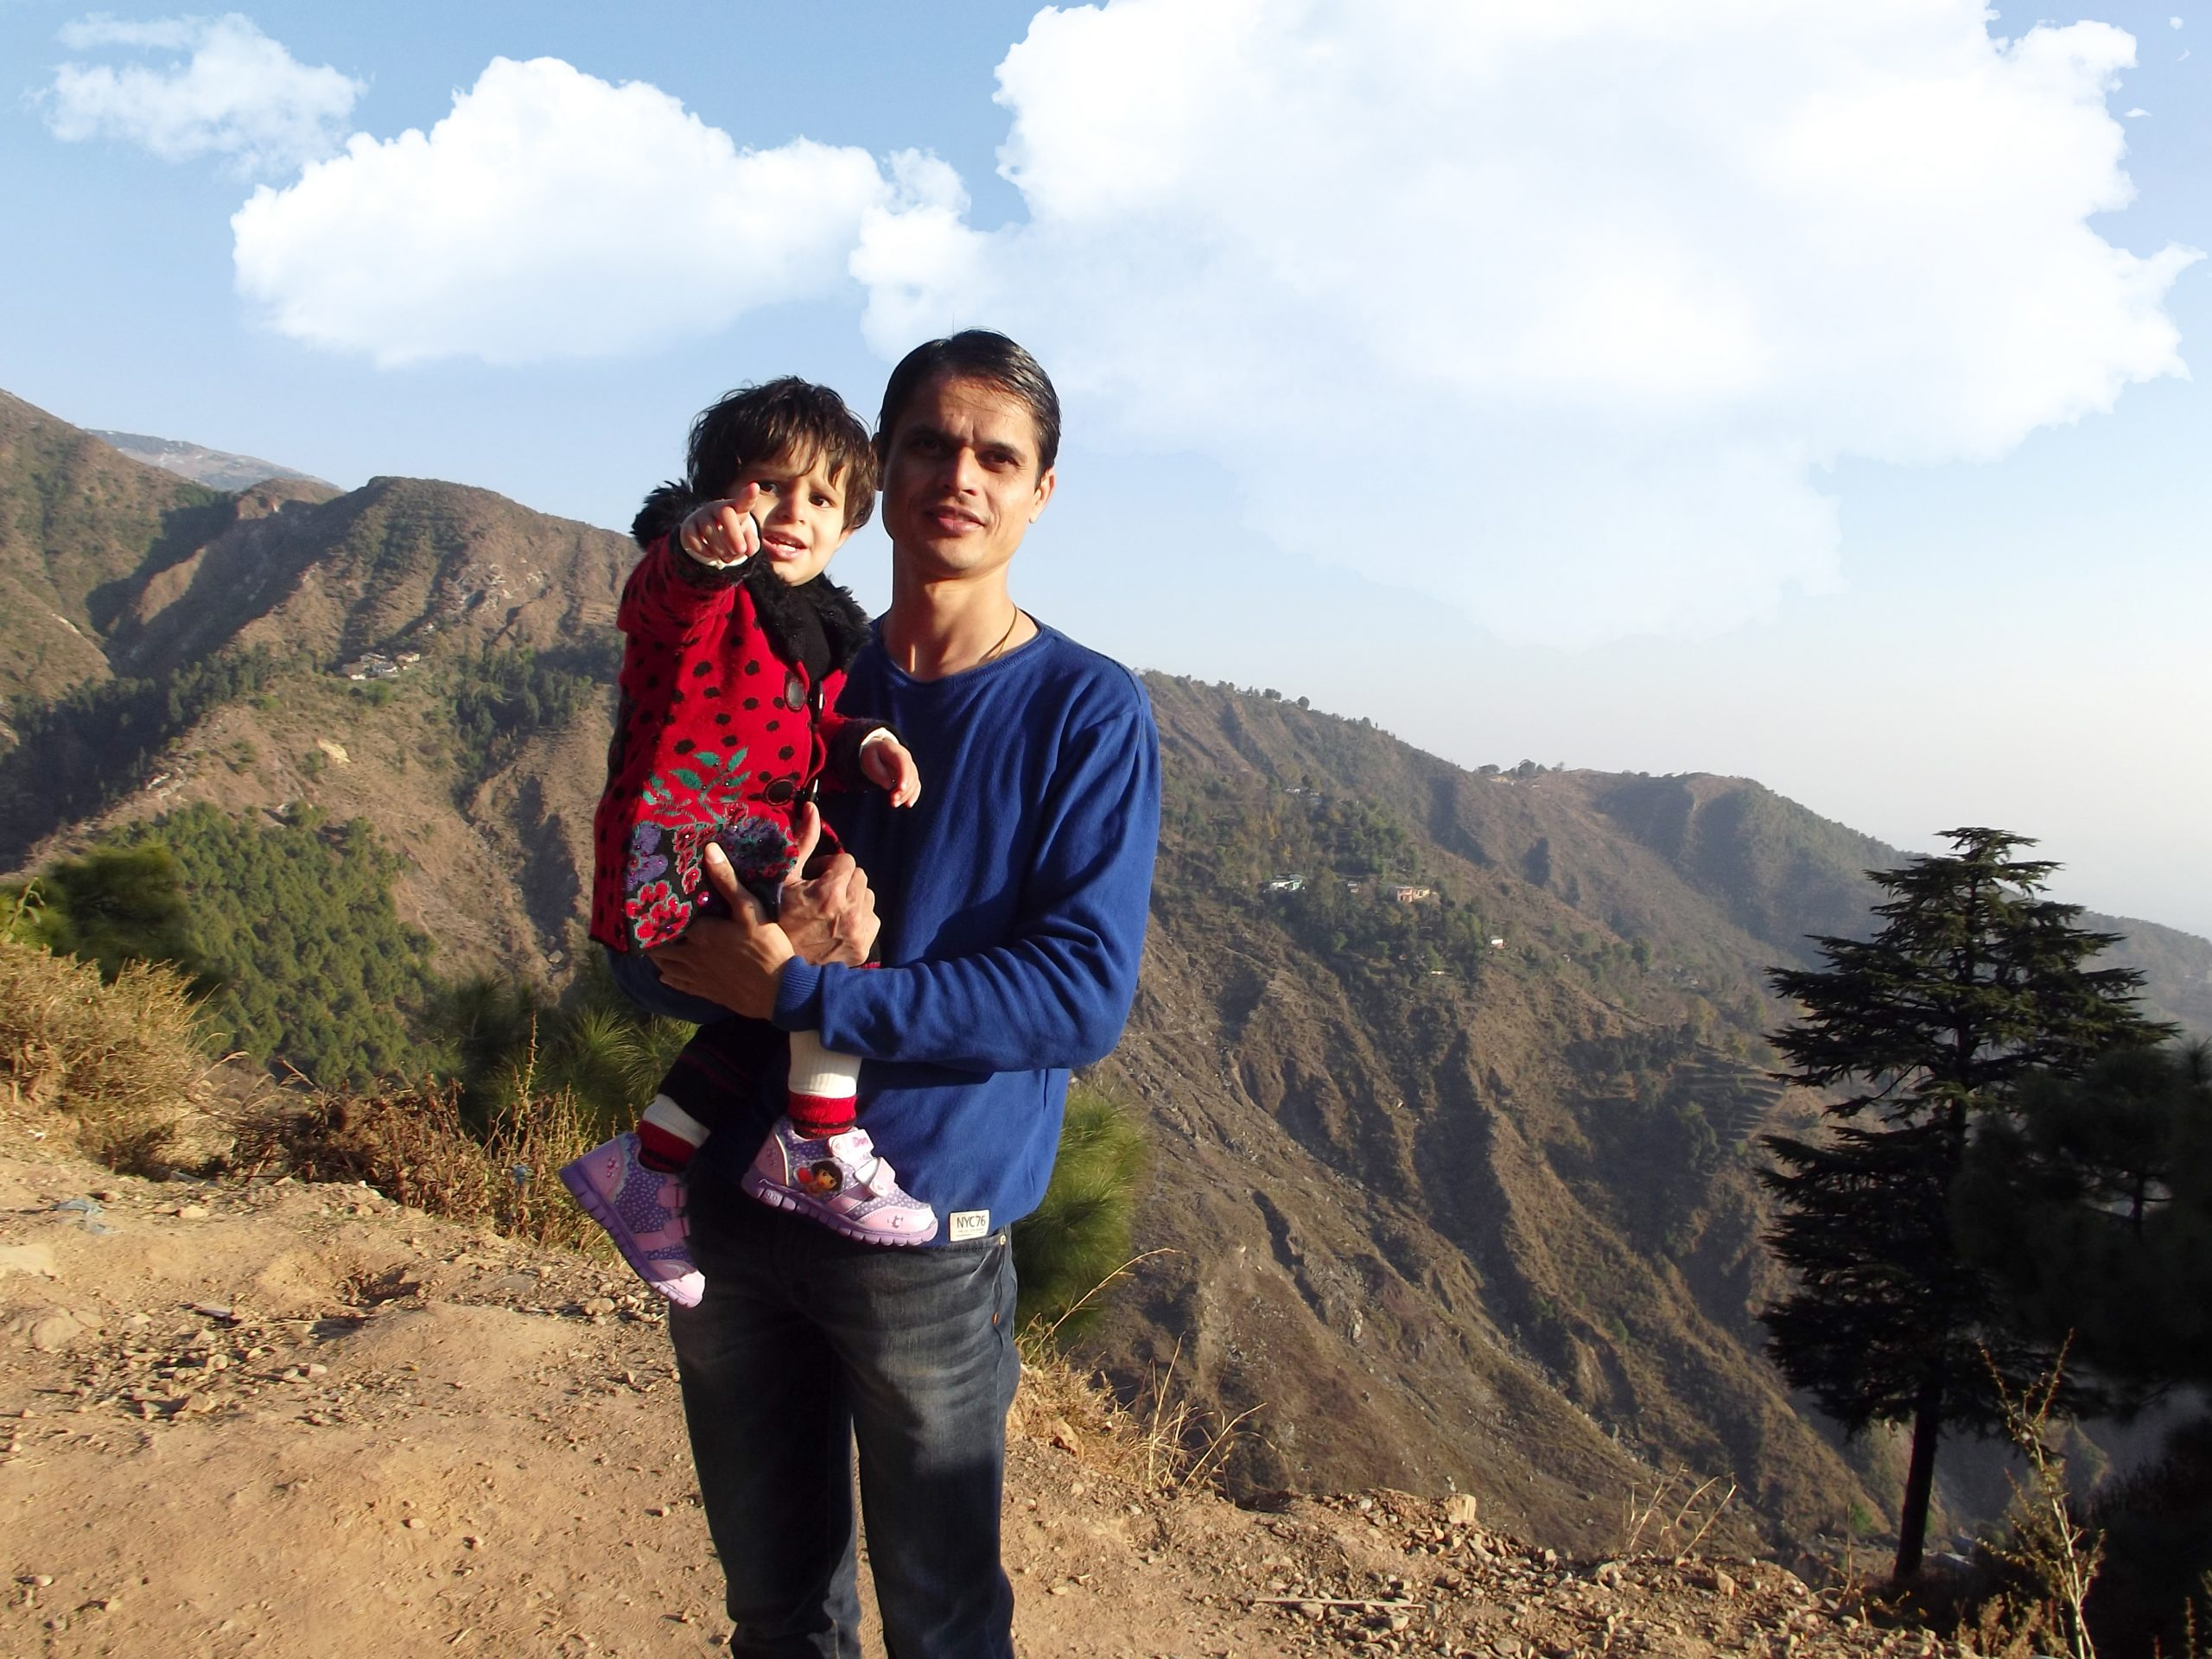 Man with baby in mountains